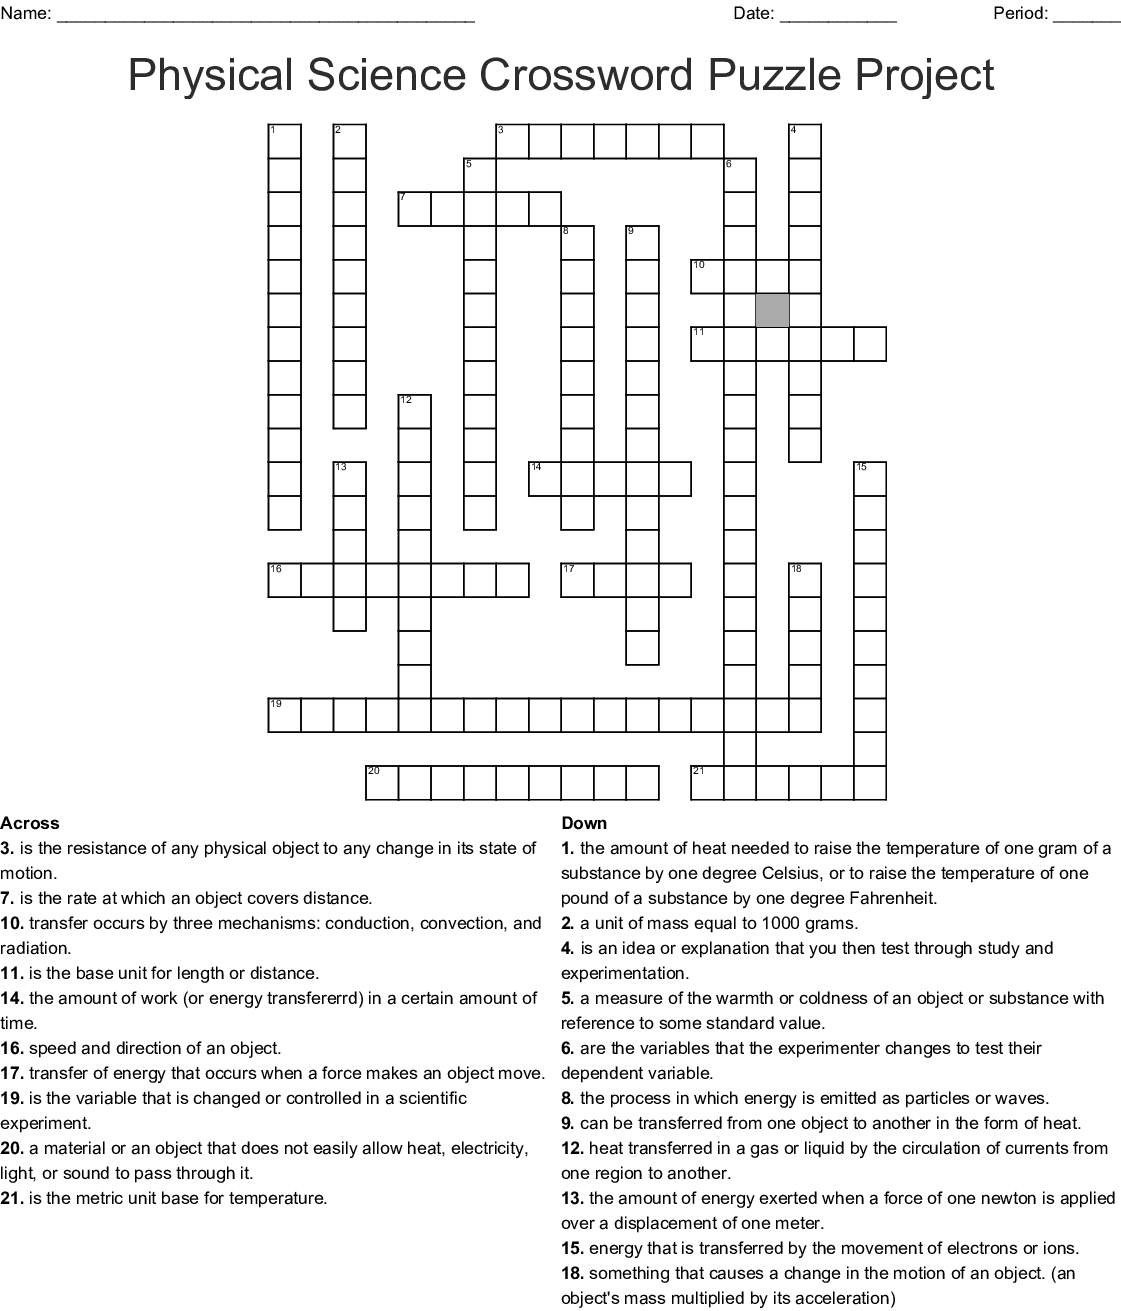 Physical Science Crossword Puzzle Project